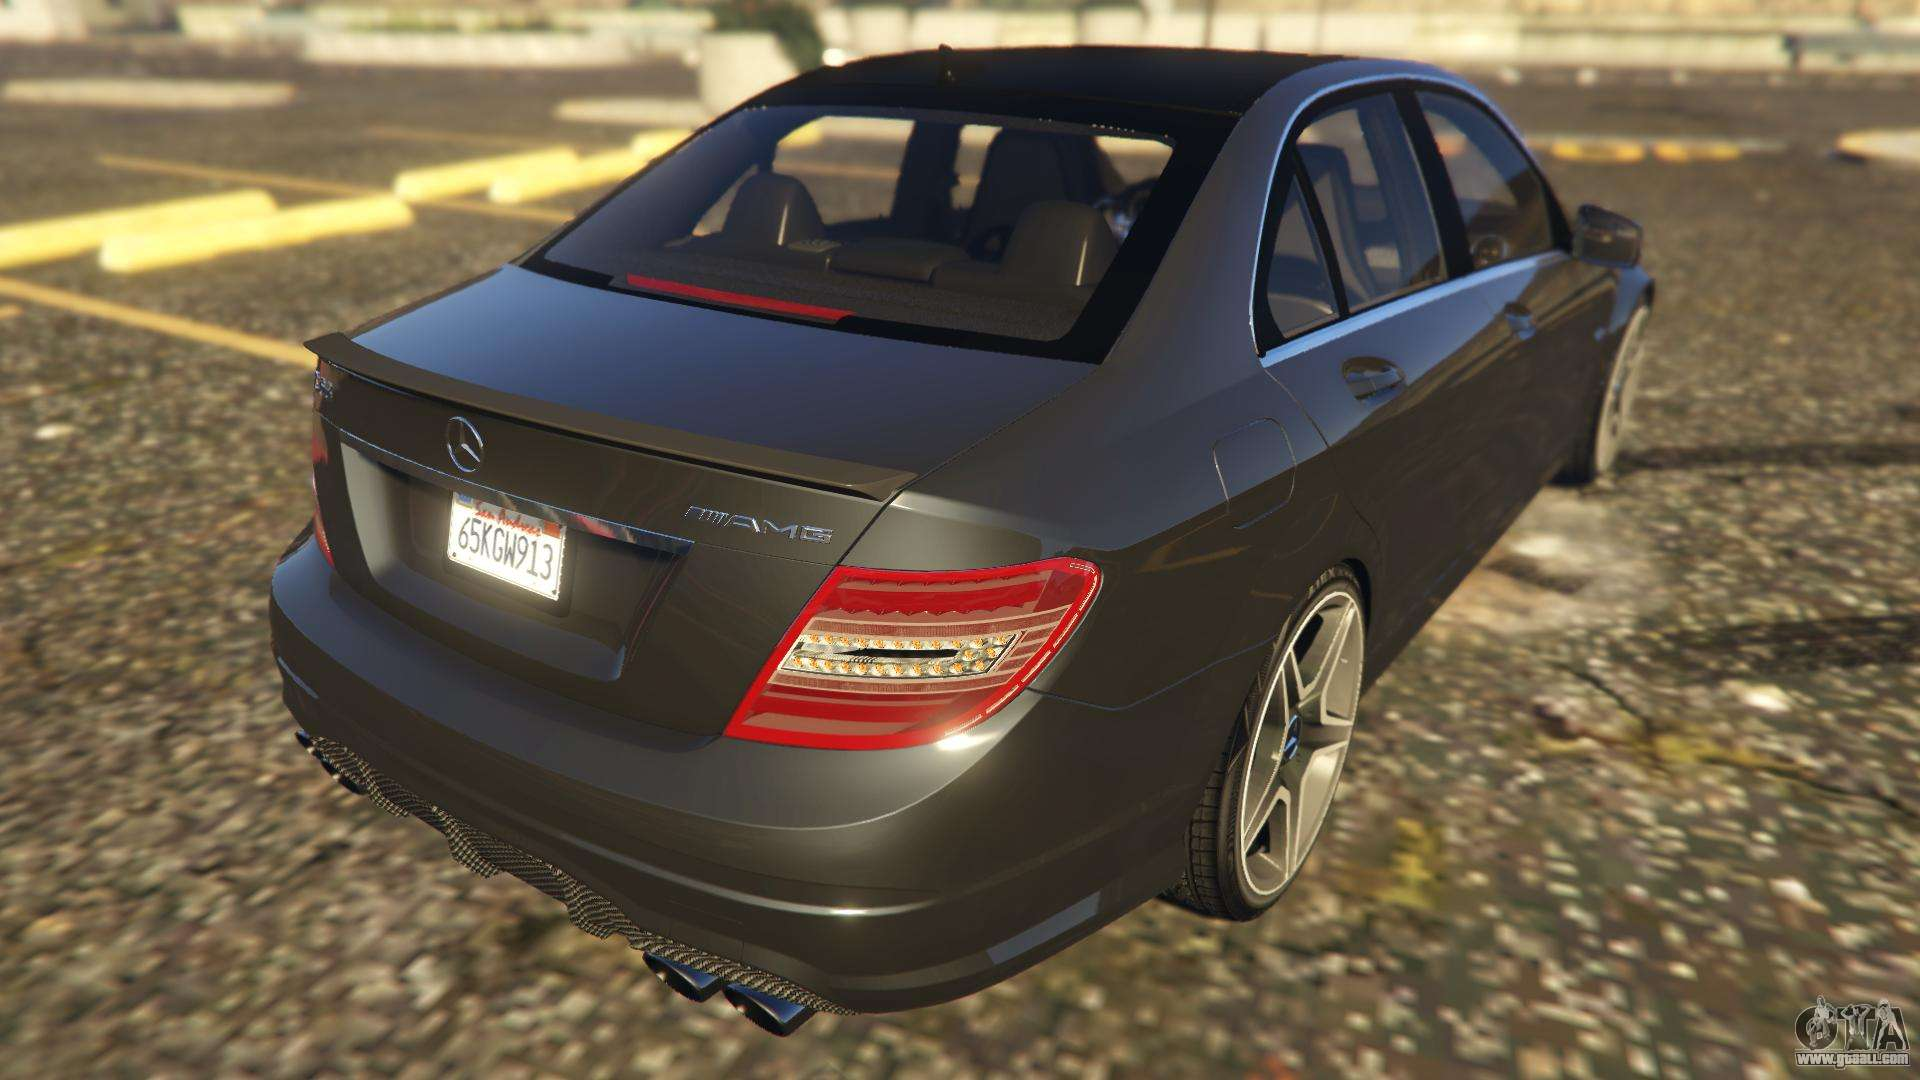 Mercedes benz c63 amg w204 2014 for gta 5 for Mercedes benz c63 amg 2014